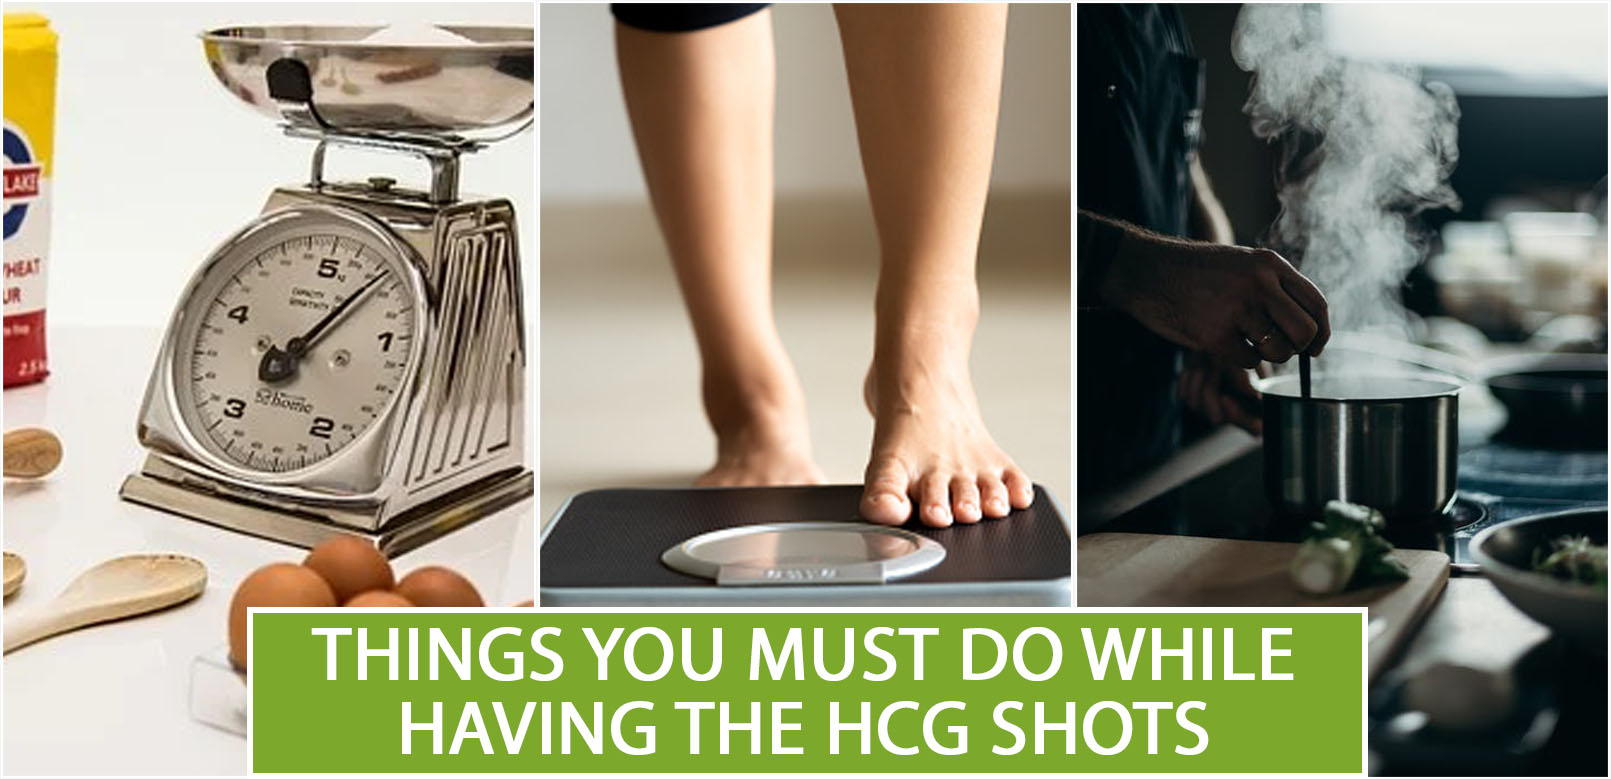 THINGS YOU MUST DO WHILE HAVING THE HCG SHOTS